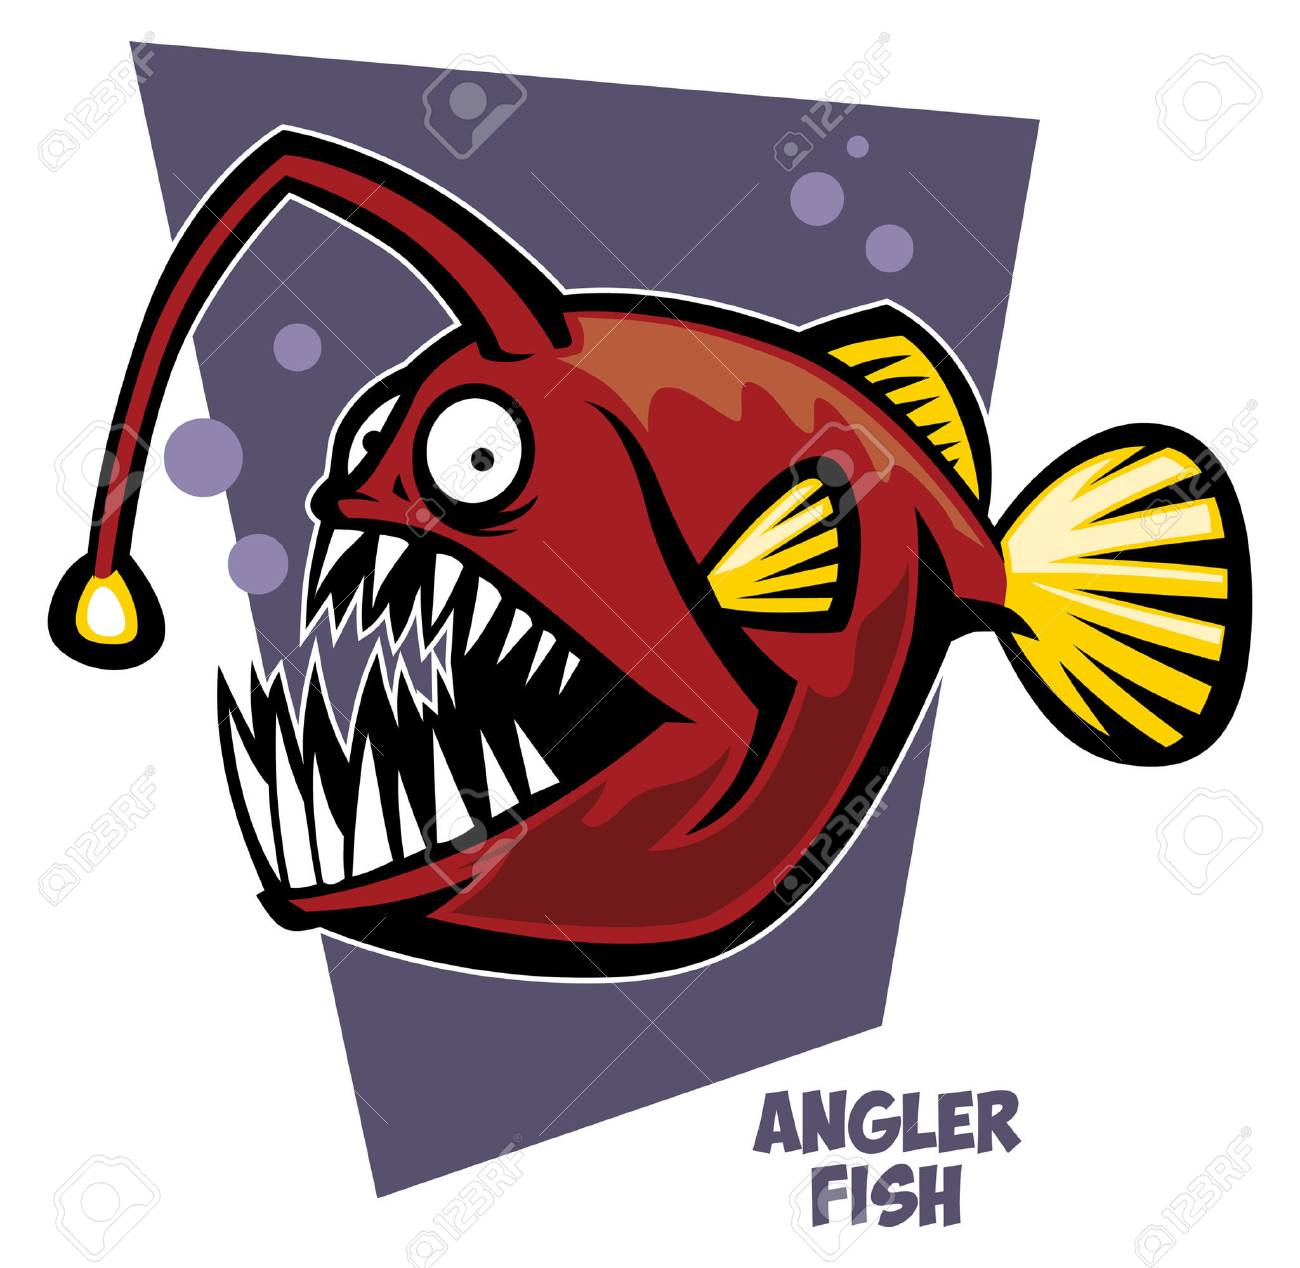 Cartoon Of Angler Fish Royalty Free Cliparts, Vectors, And Stock ...